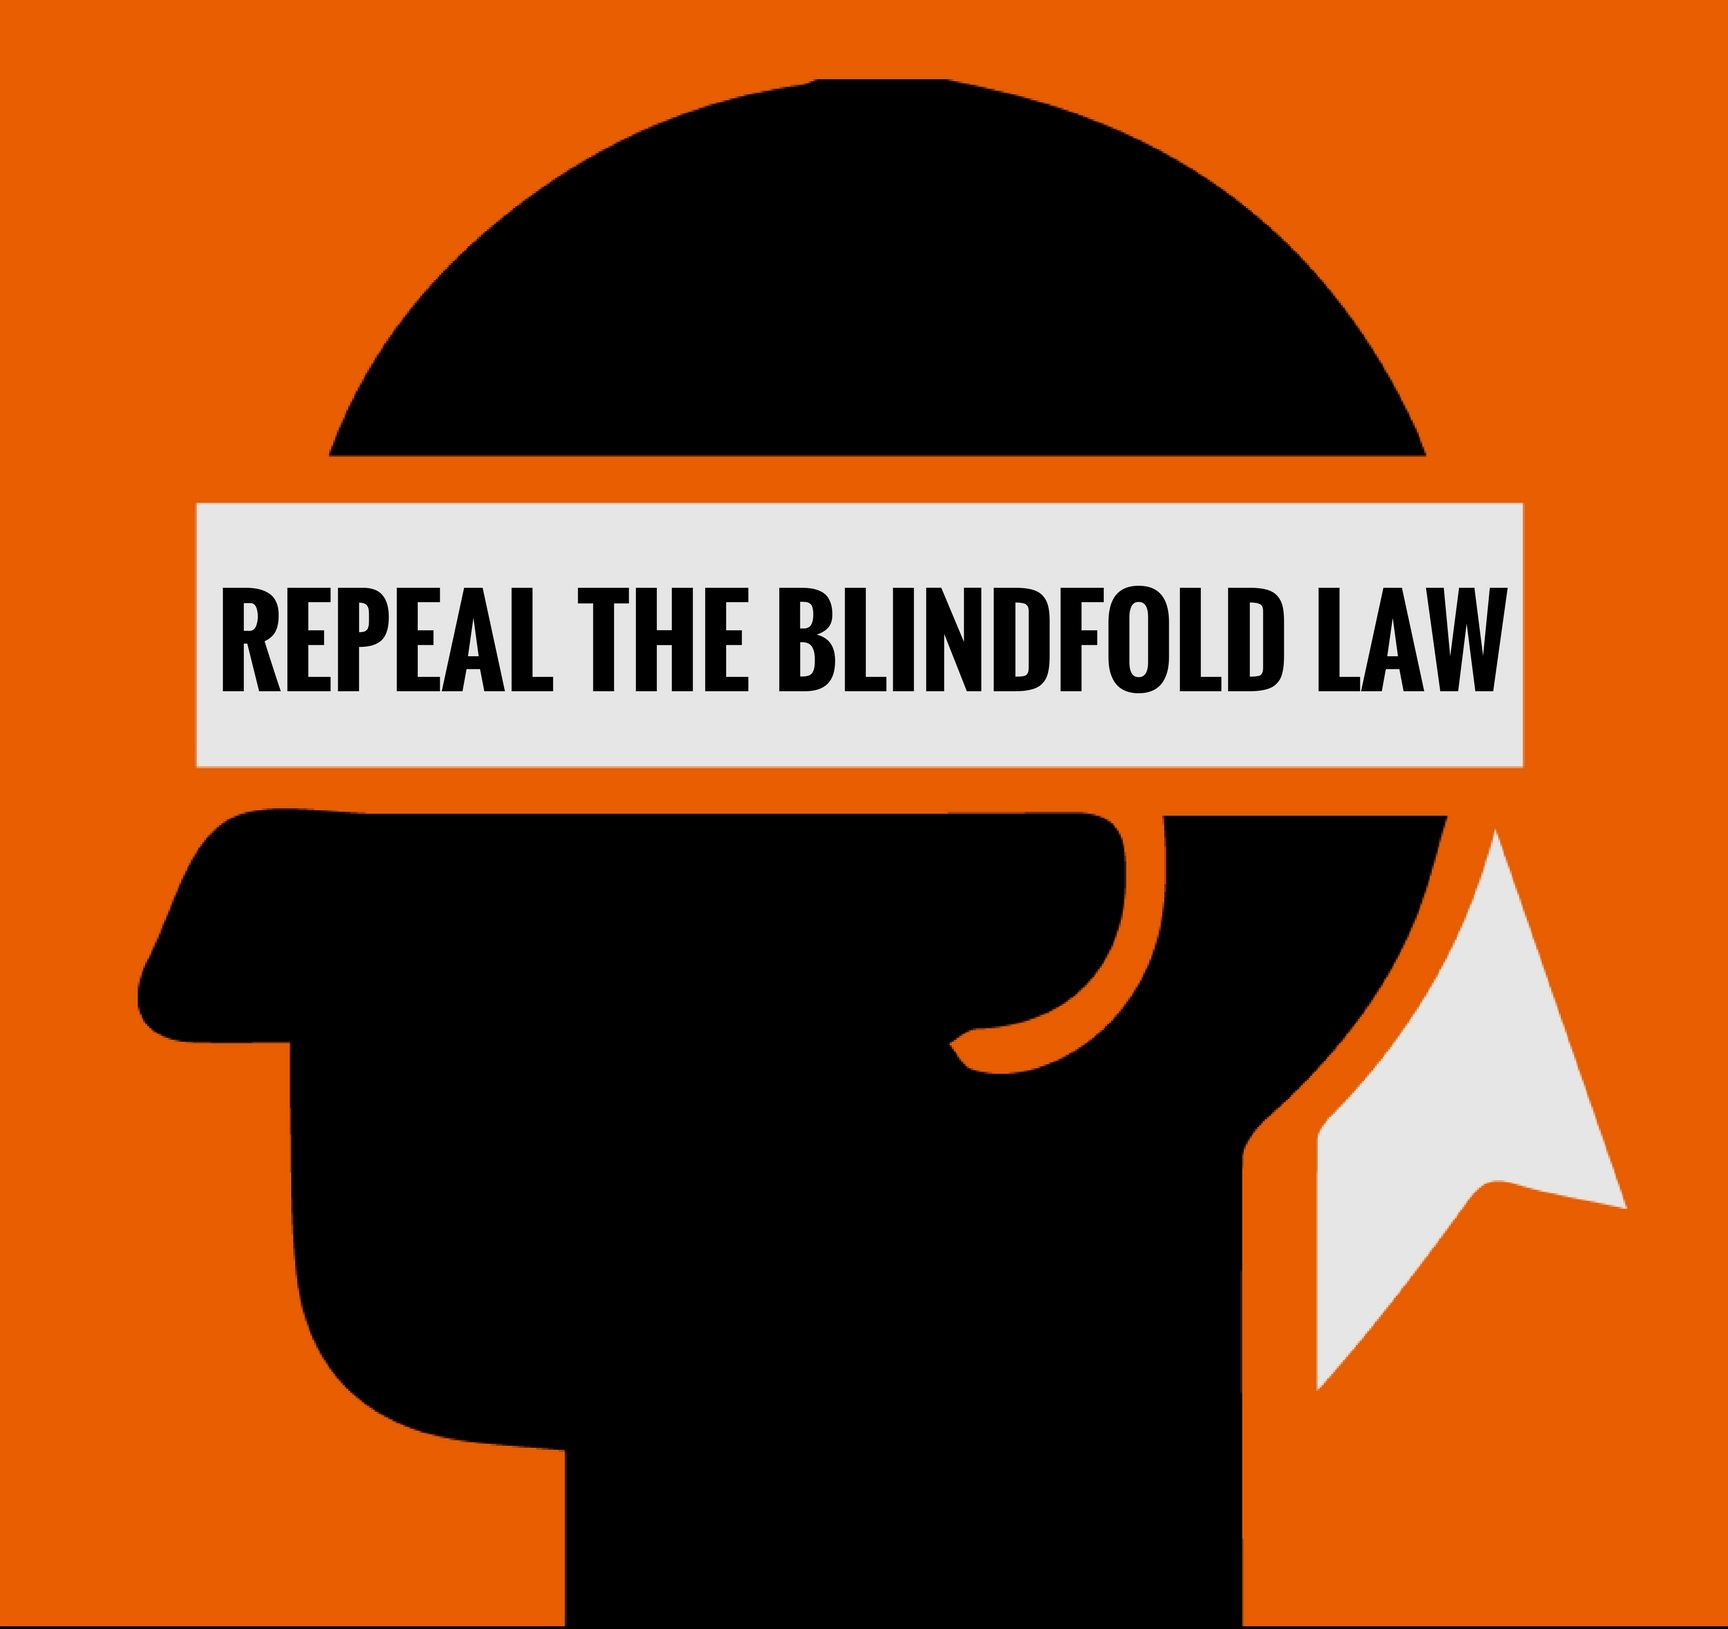 REPEAL+THE+BLINDFOLD+LAW+%281%29.jpg